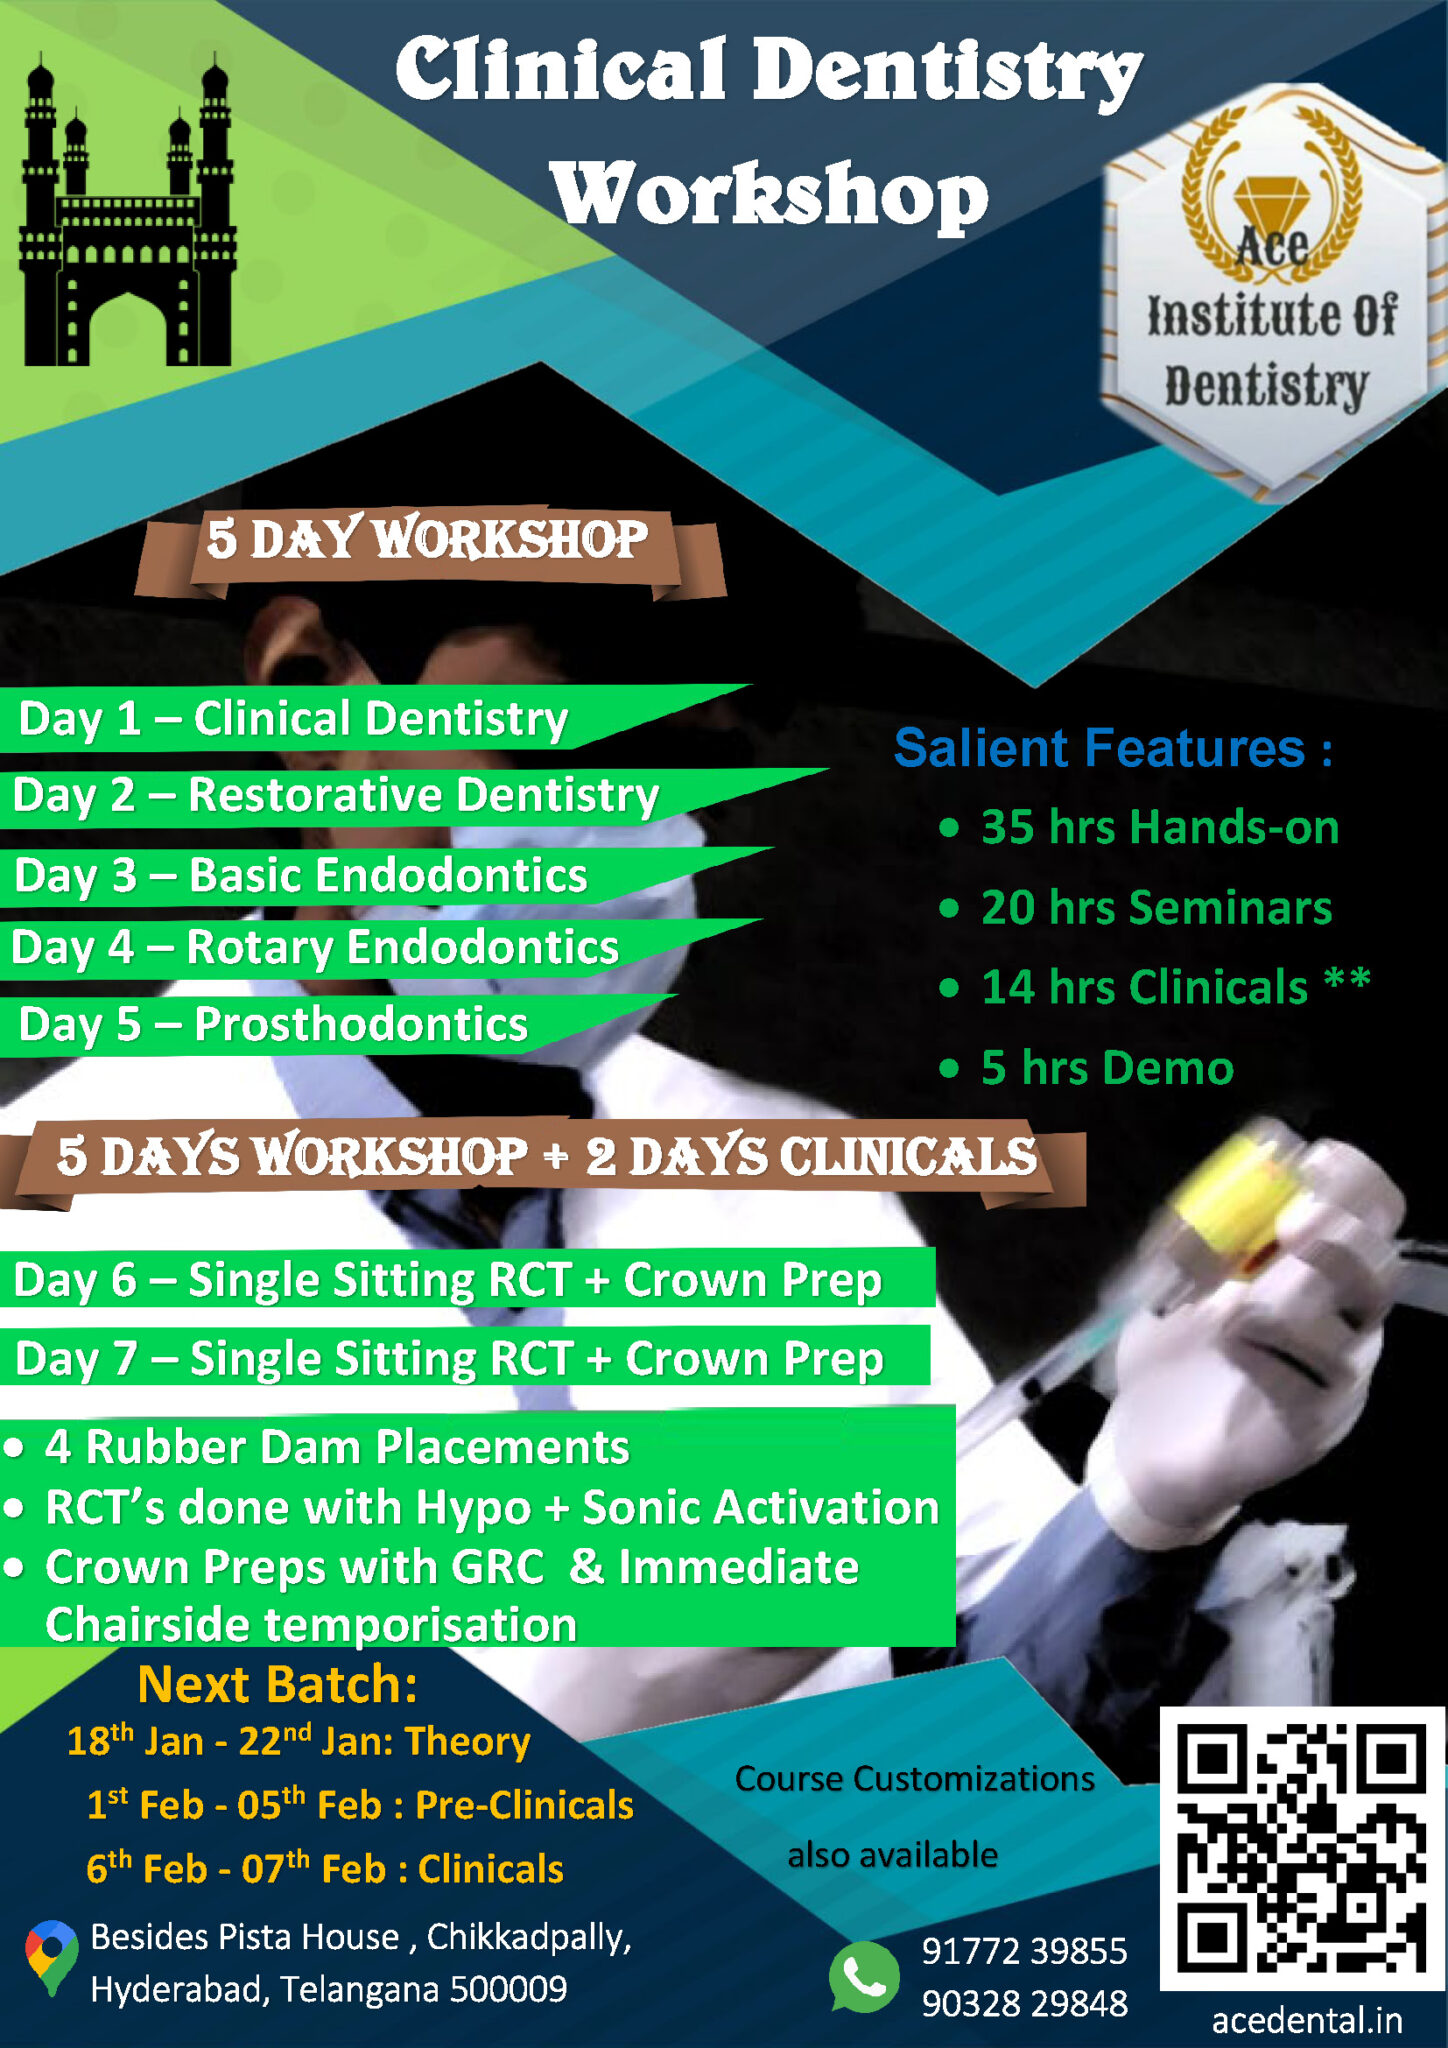 Clinical Dentistry Workshop